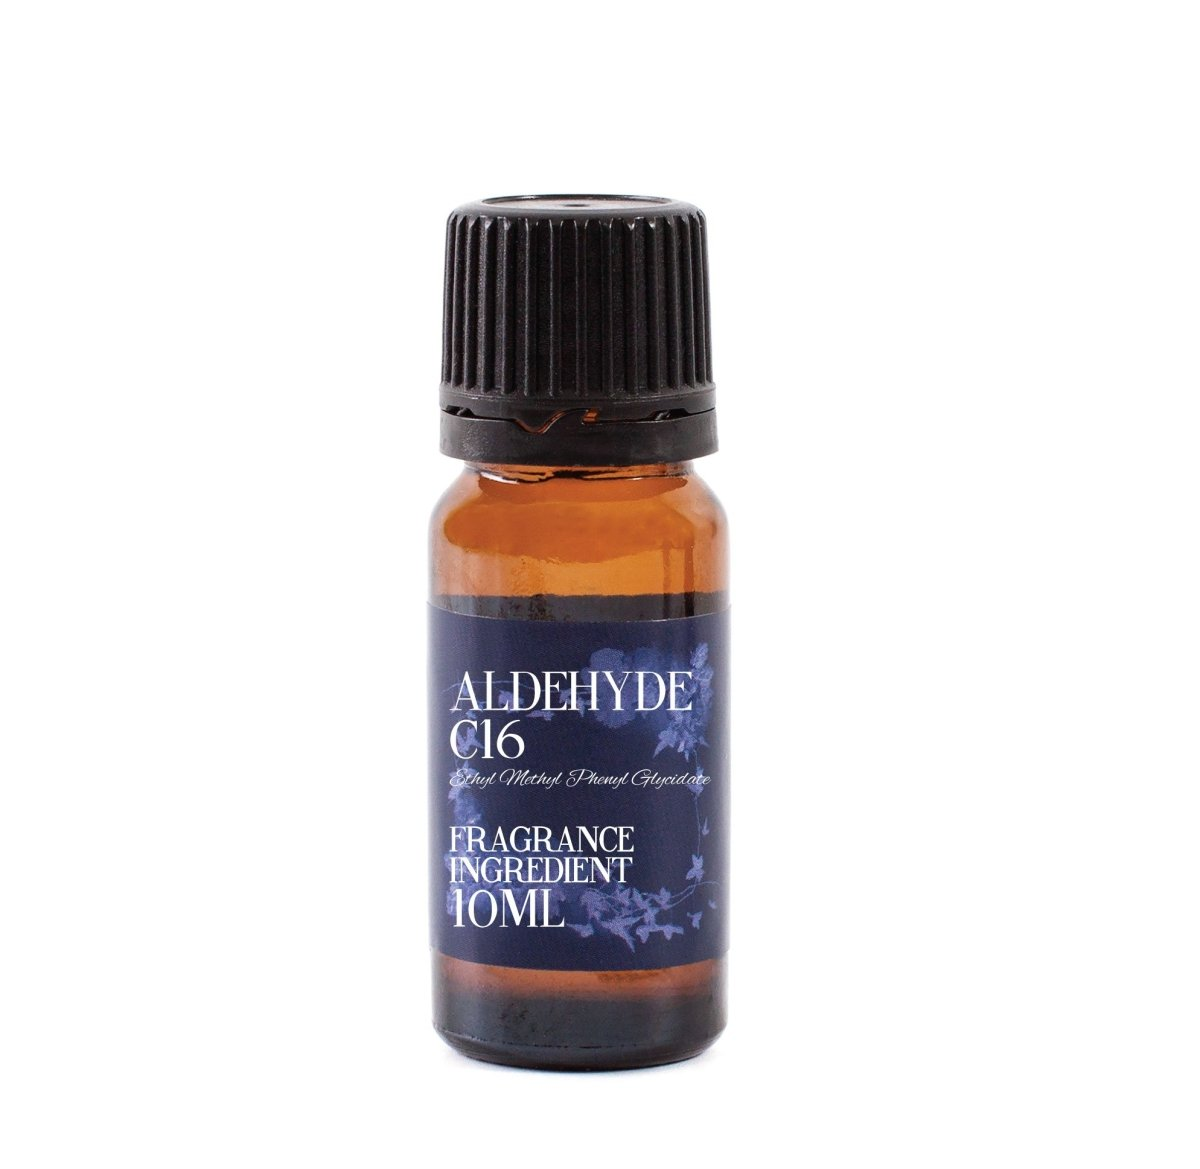 Aldehyde C16 (Ethyl Methyl Phenyl Glycidate) - Mystic Moments UK